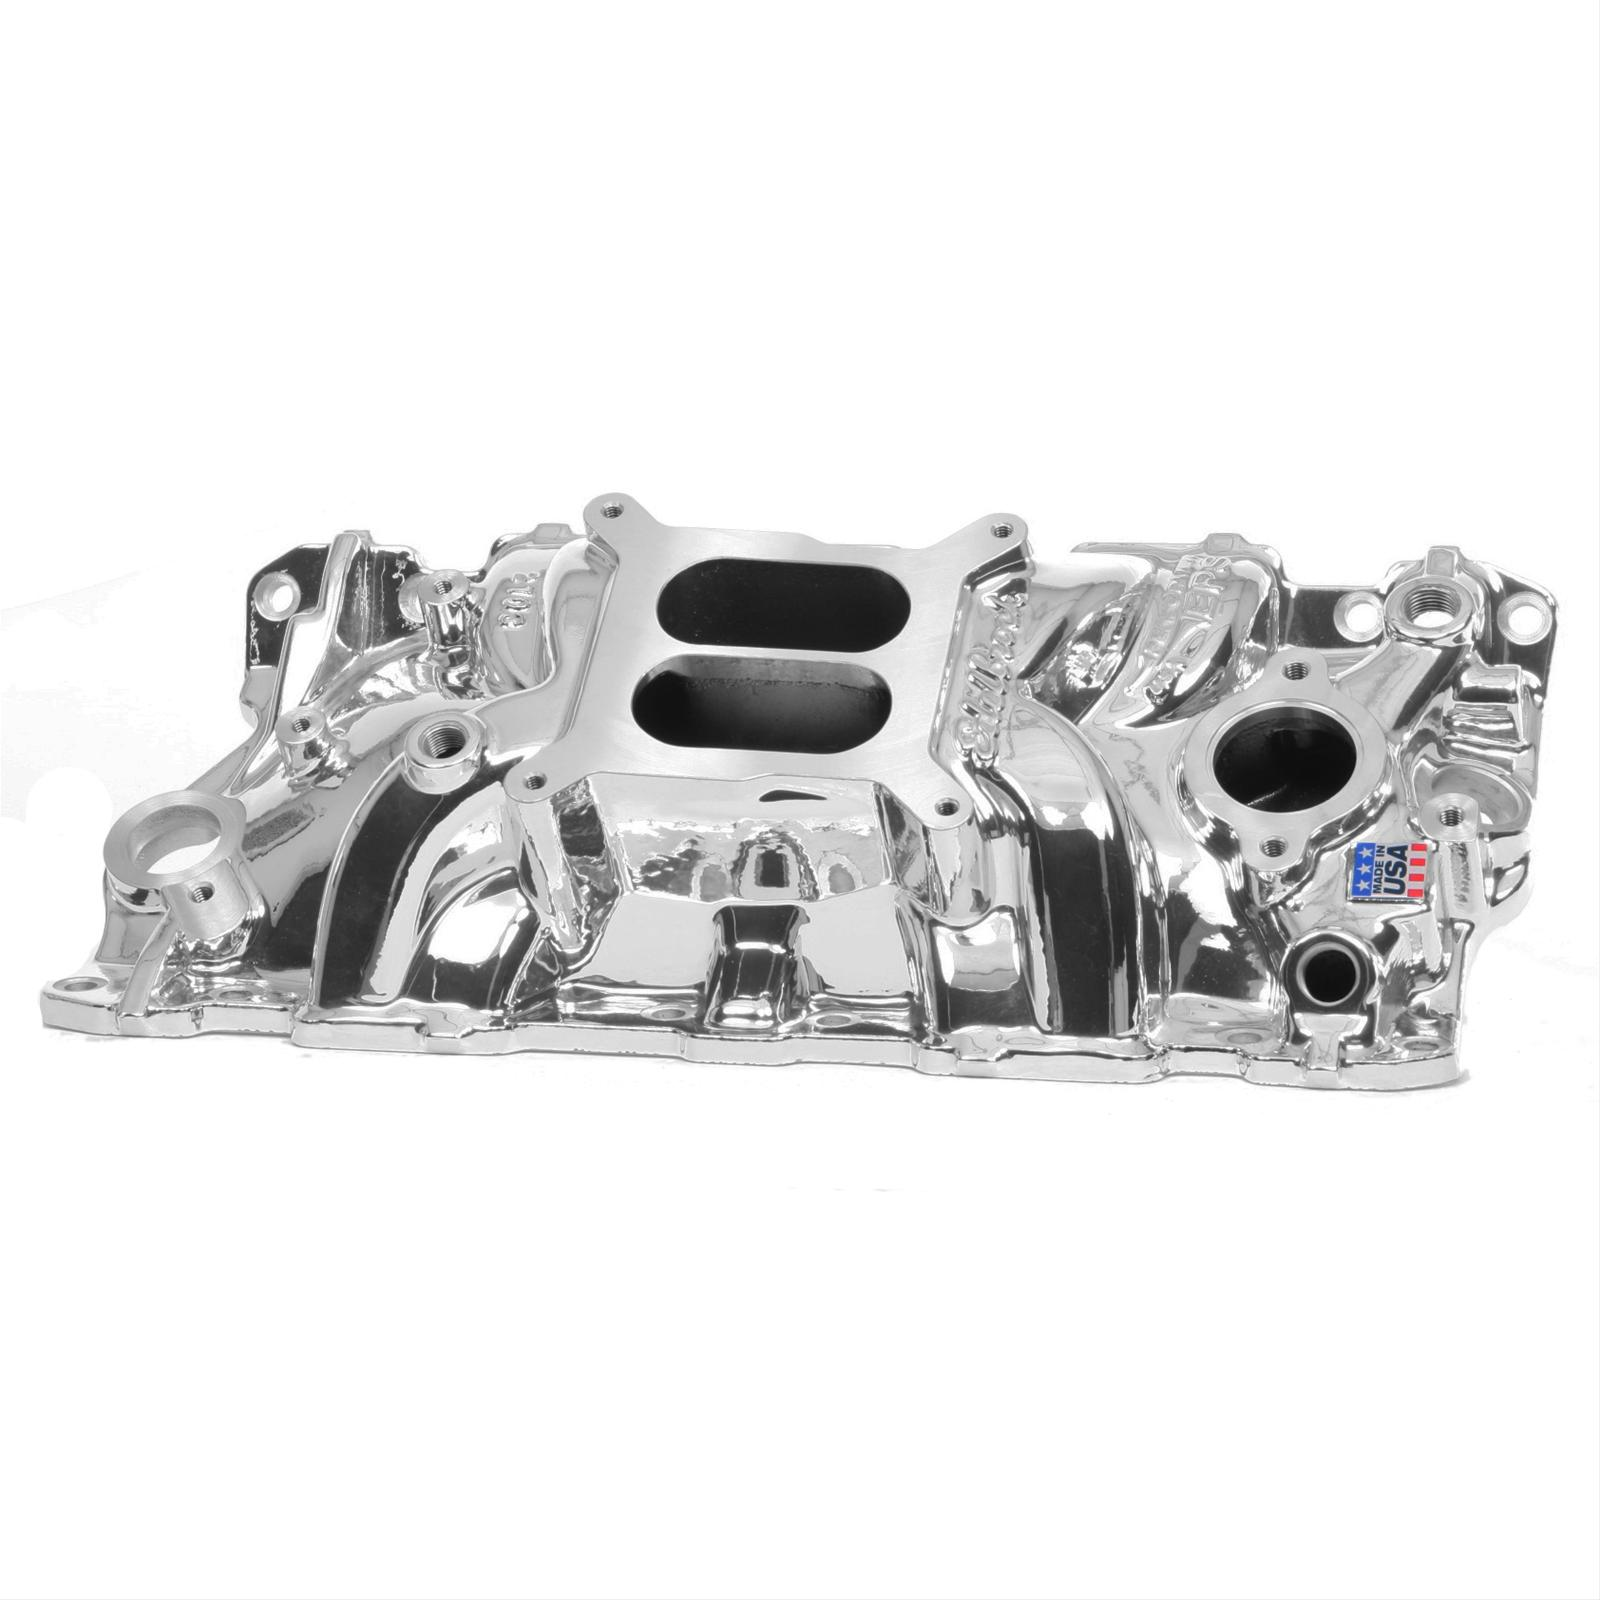 Edelbrock 2701 Perf EPS Intake SB Chevy w// Free ARP Bolts and FelPro Gaskets